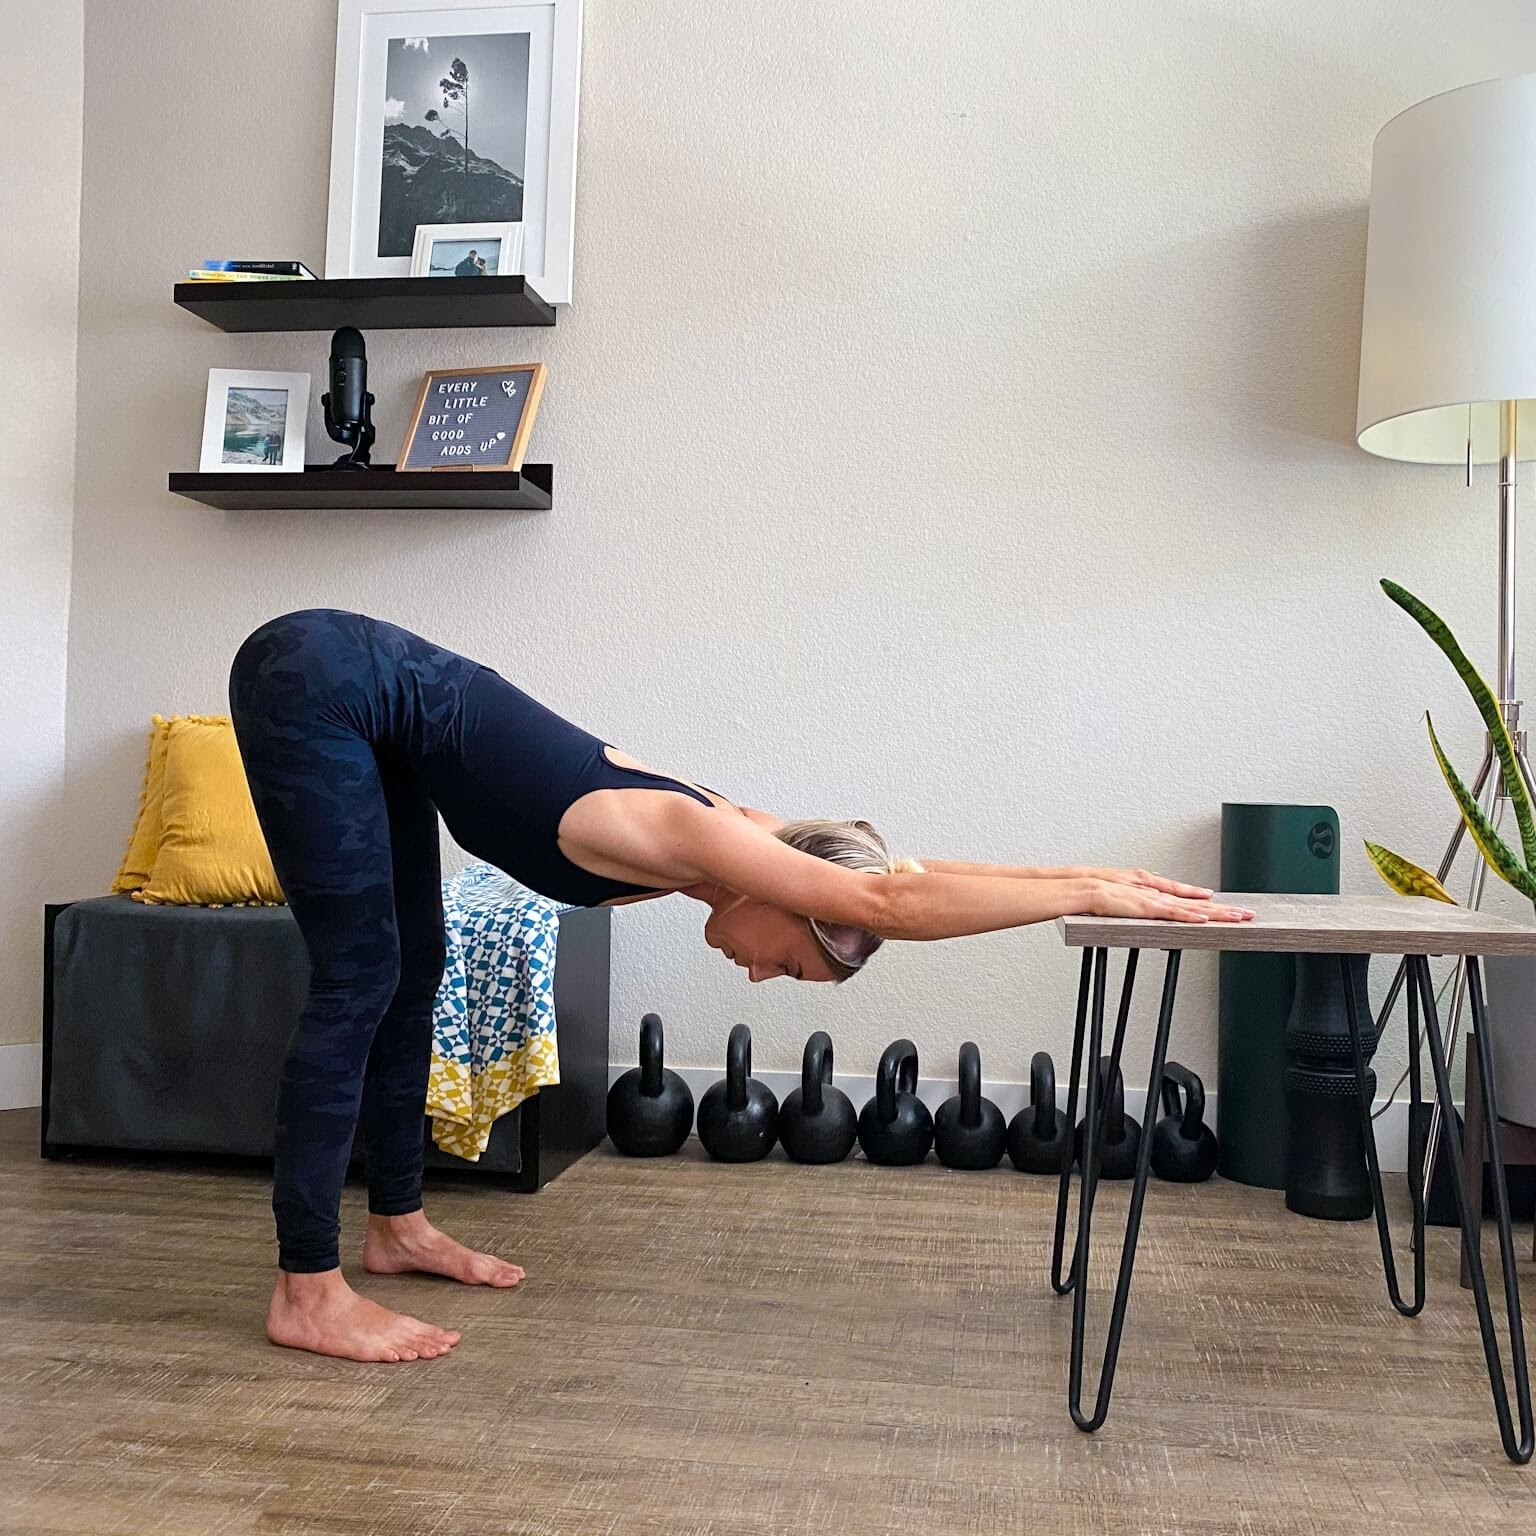 Modified downward dog standing and using desk